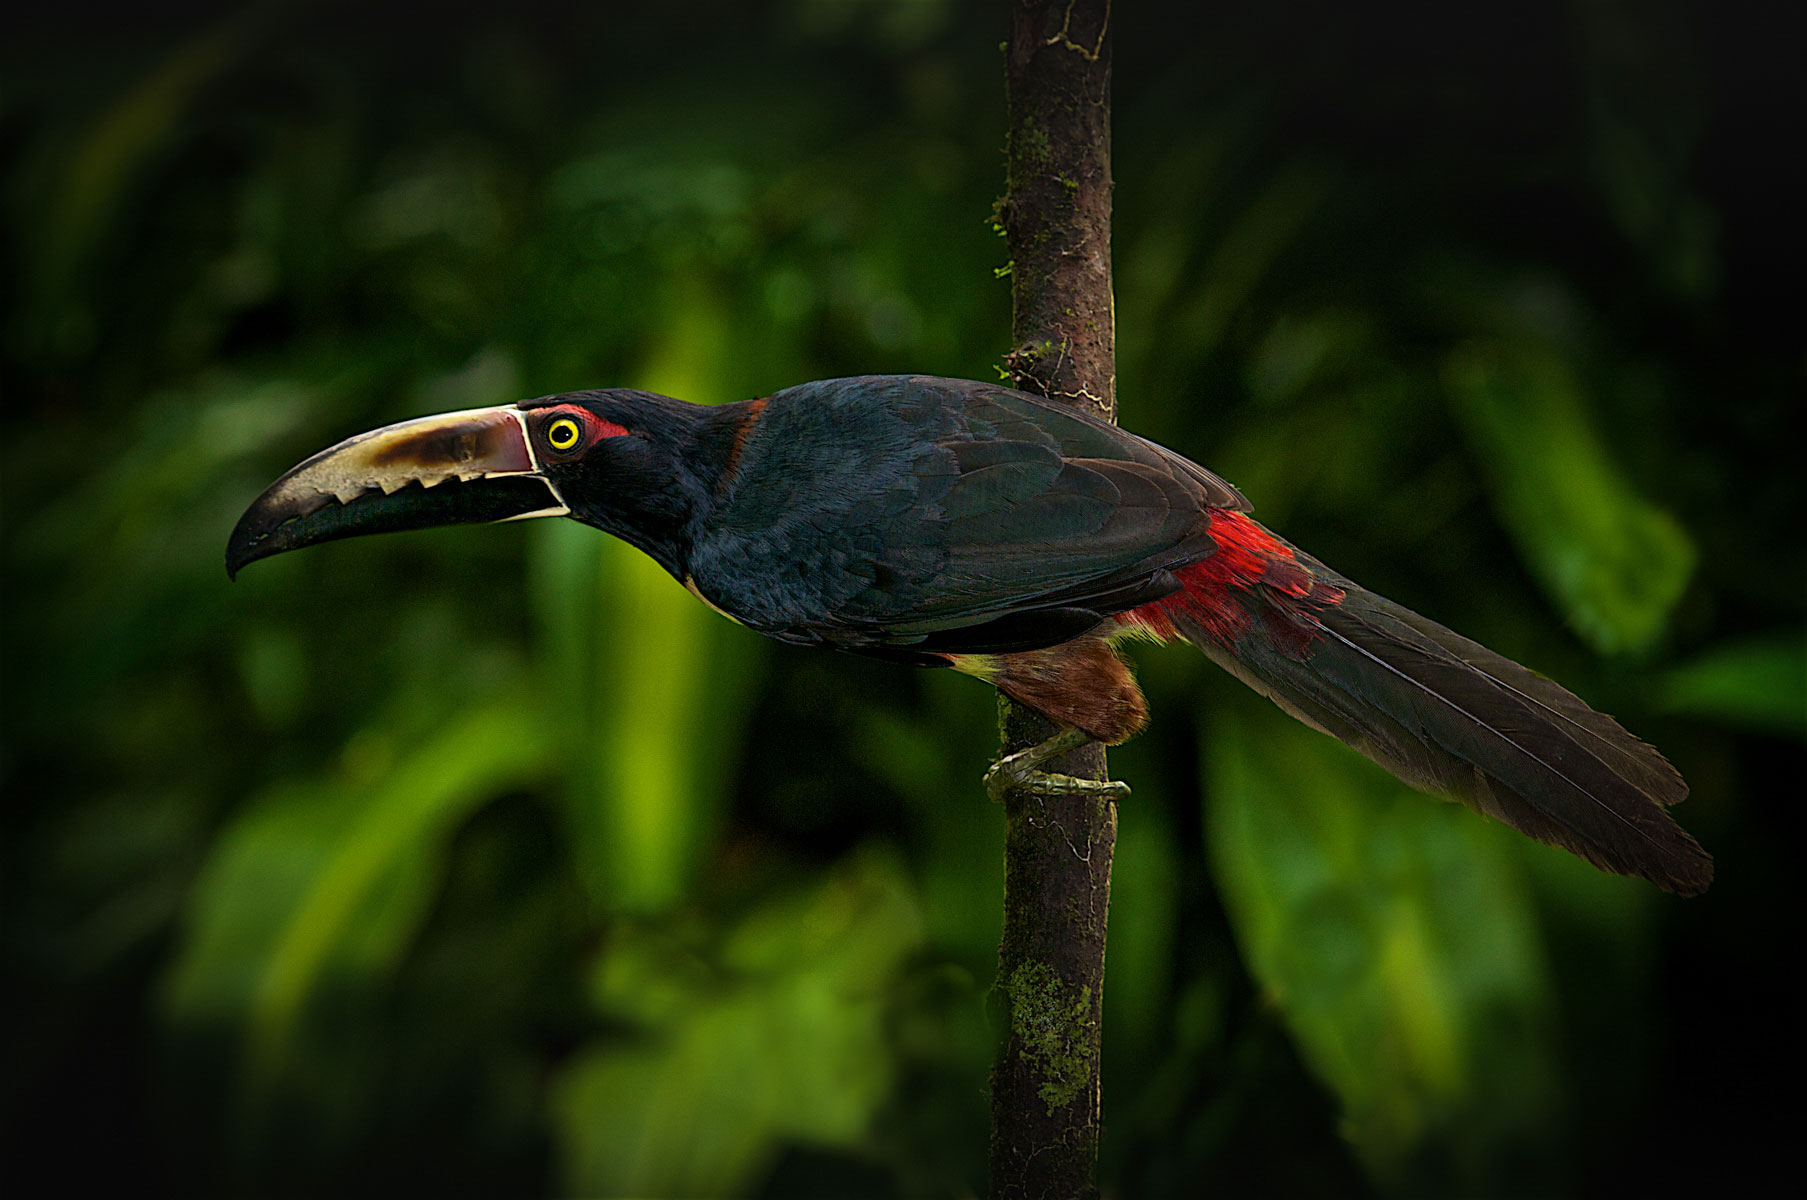 Rather than translating the Collared Aracari's name directly from English, Mexican officials went with a more descriptive label: Tucancillo Collarejo. Garrett Scales/Audubon Photography Awards